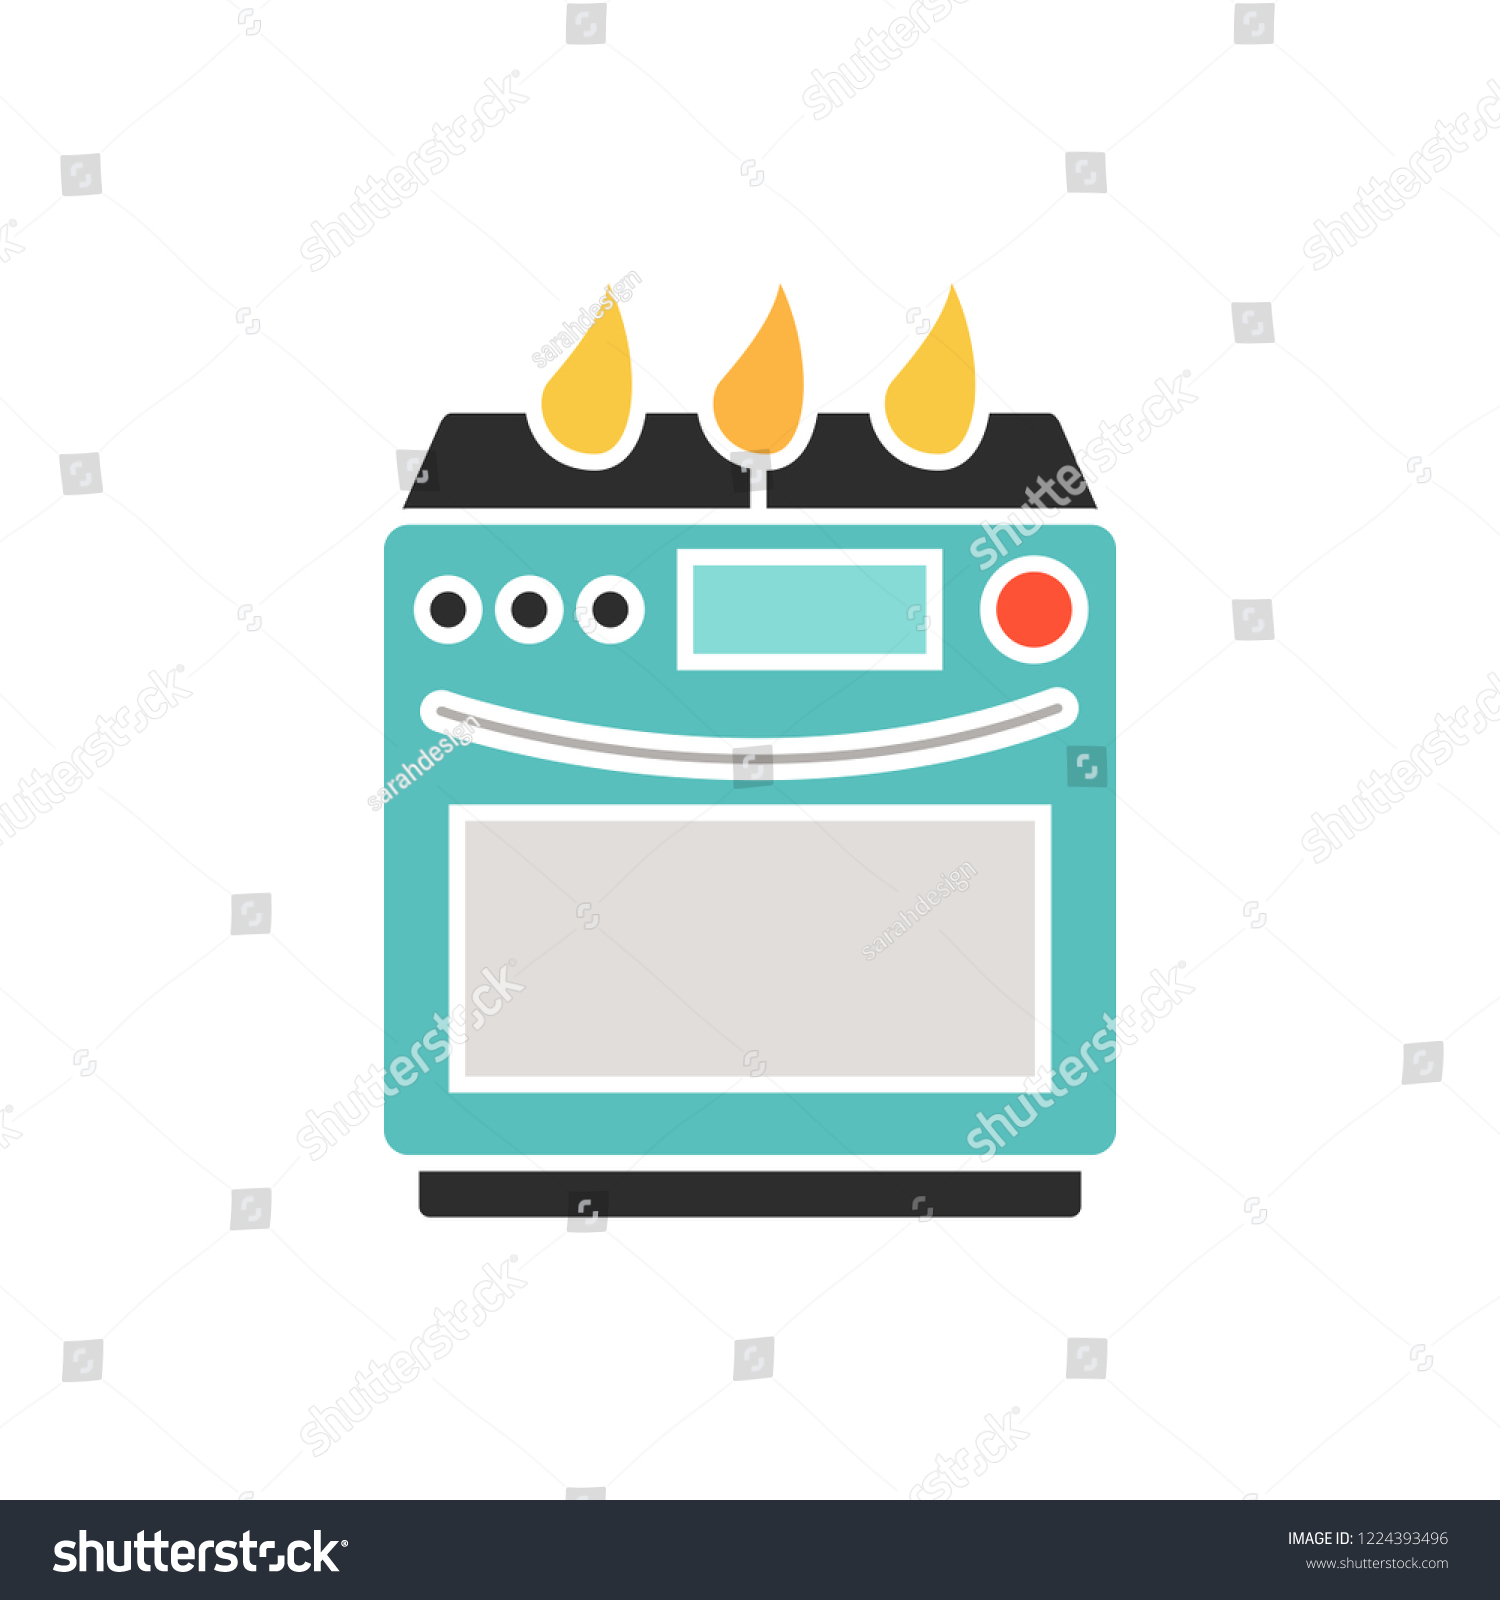 9c3113c3eb vector cooking stove icon. Flat illustration of kitchen equipment. cooking  appliance isolated on white background. oven cooker sign symbol - Vector